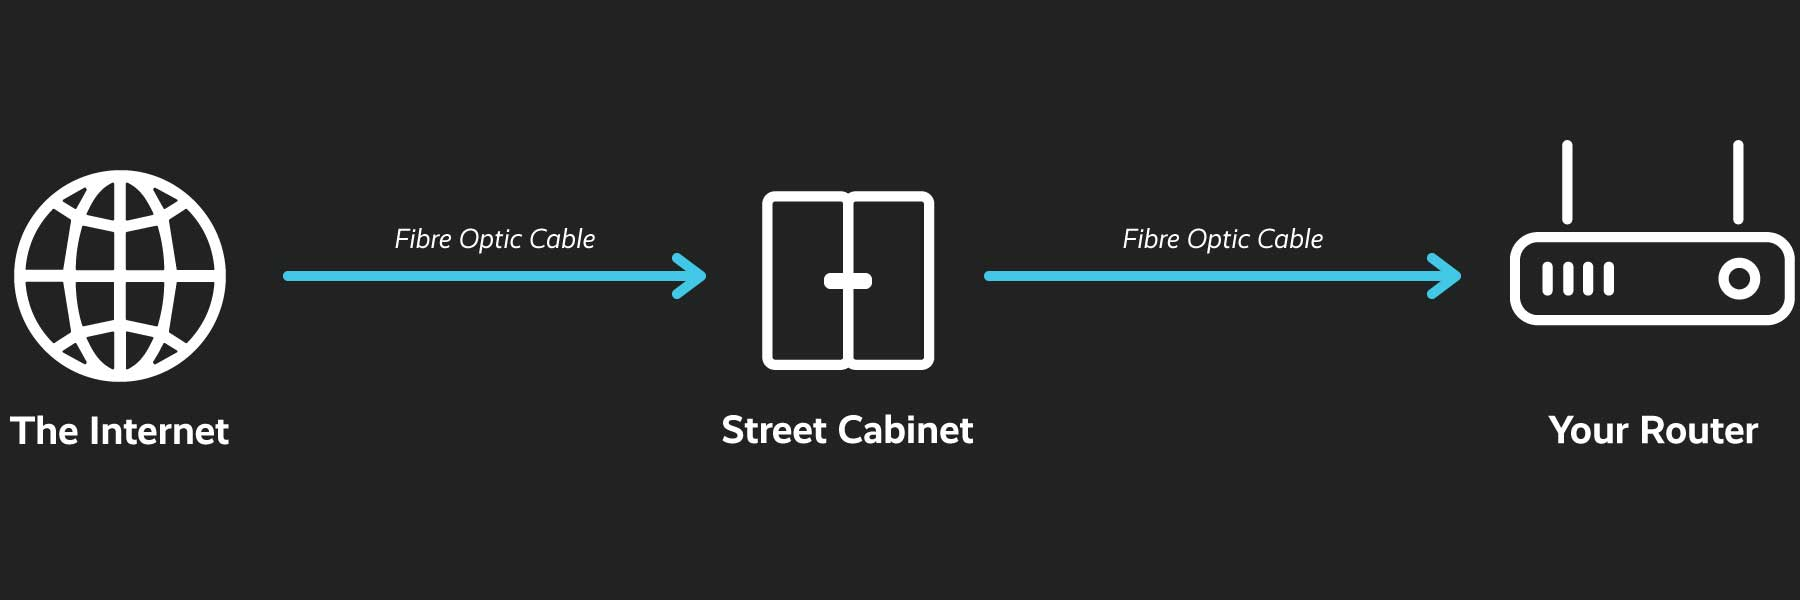 Fibre to the premises diagram